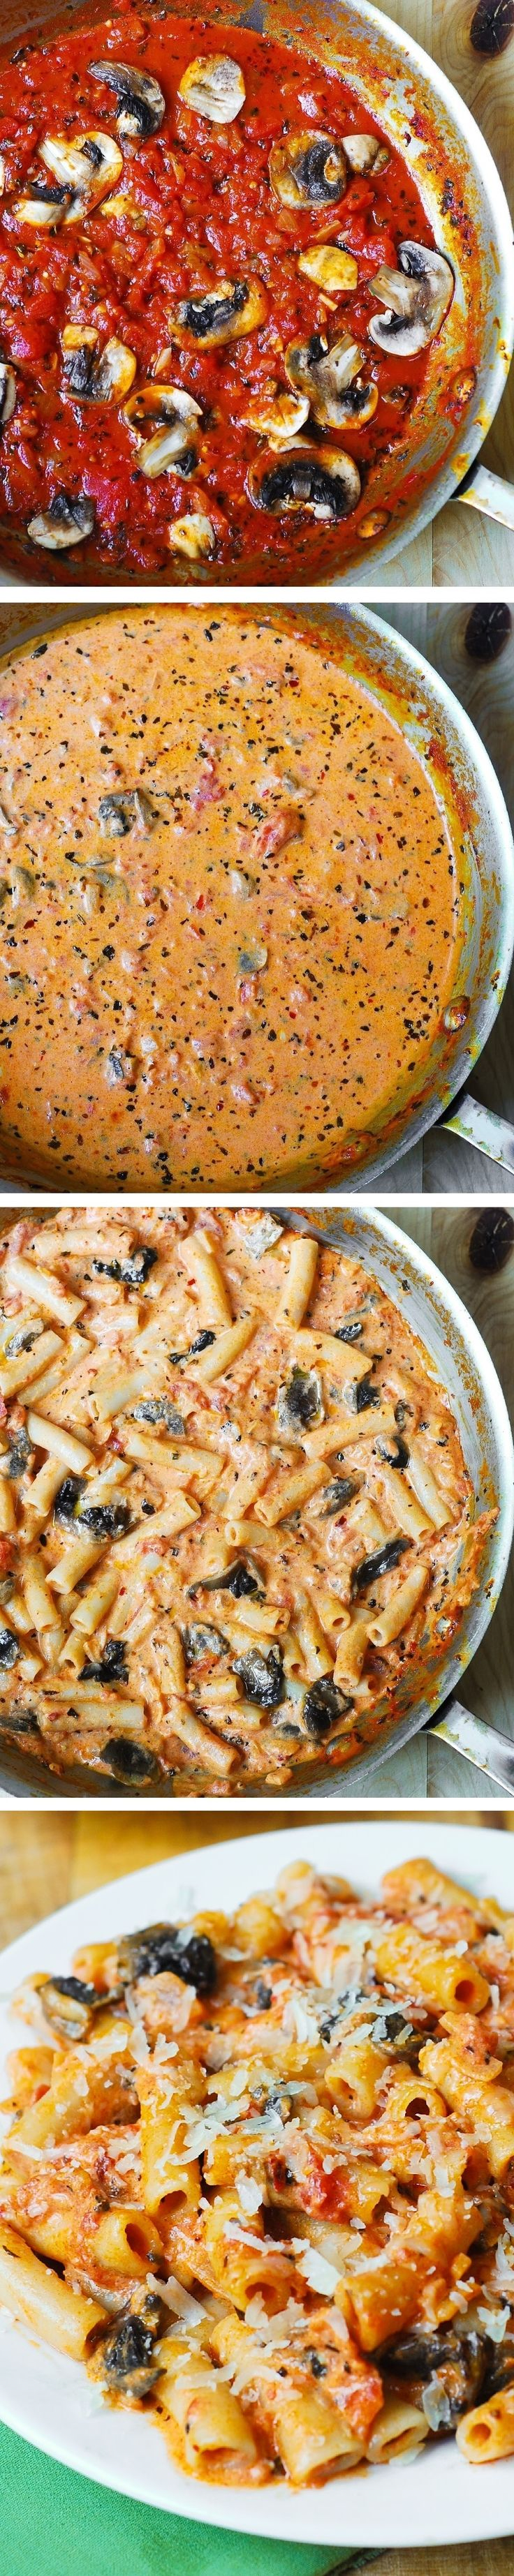 Penne Pasta in Creamy Vodka Tomato Sauce with Mushrooms - sauce made from scratch! Easy, delicious, and so Italian! For gluten free - Use gluten-free brown rice penne pasta.